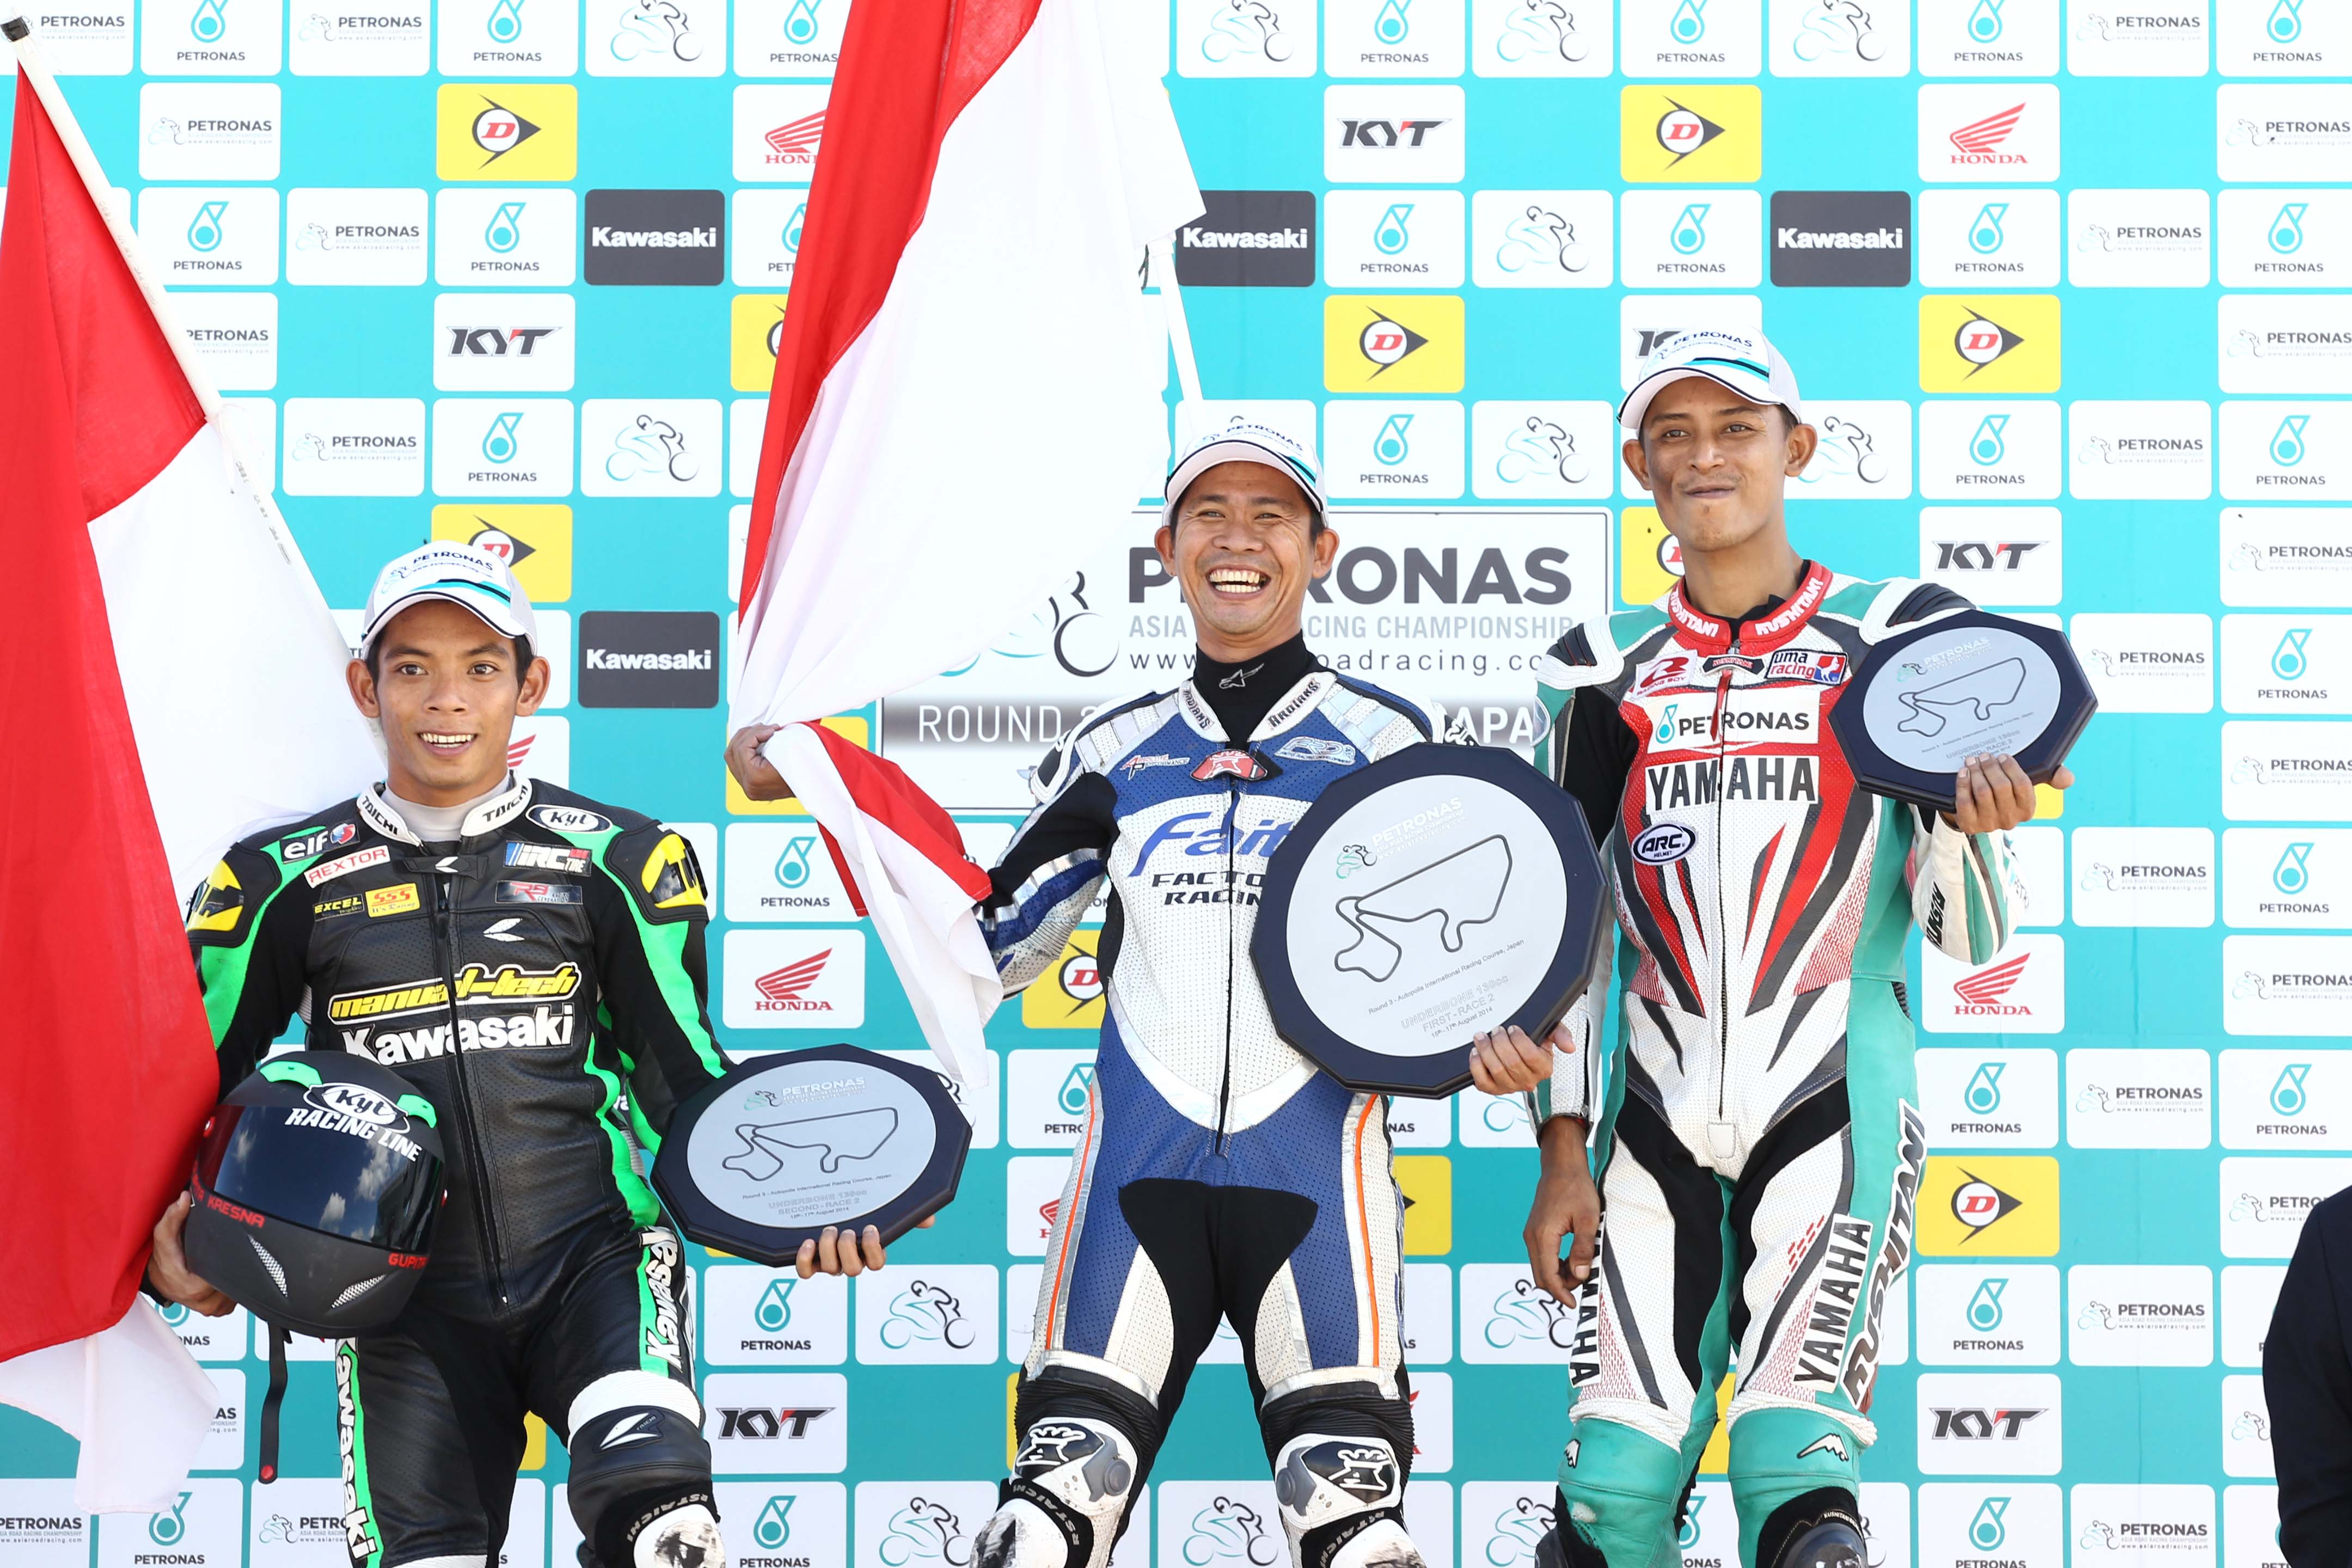 Ahmad Fazli Sham (far right) on the UB130 podium at Autopolis Japan last weekend.